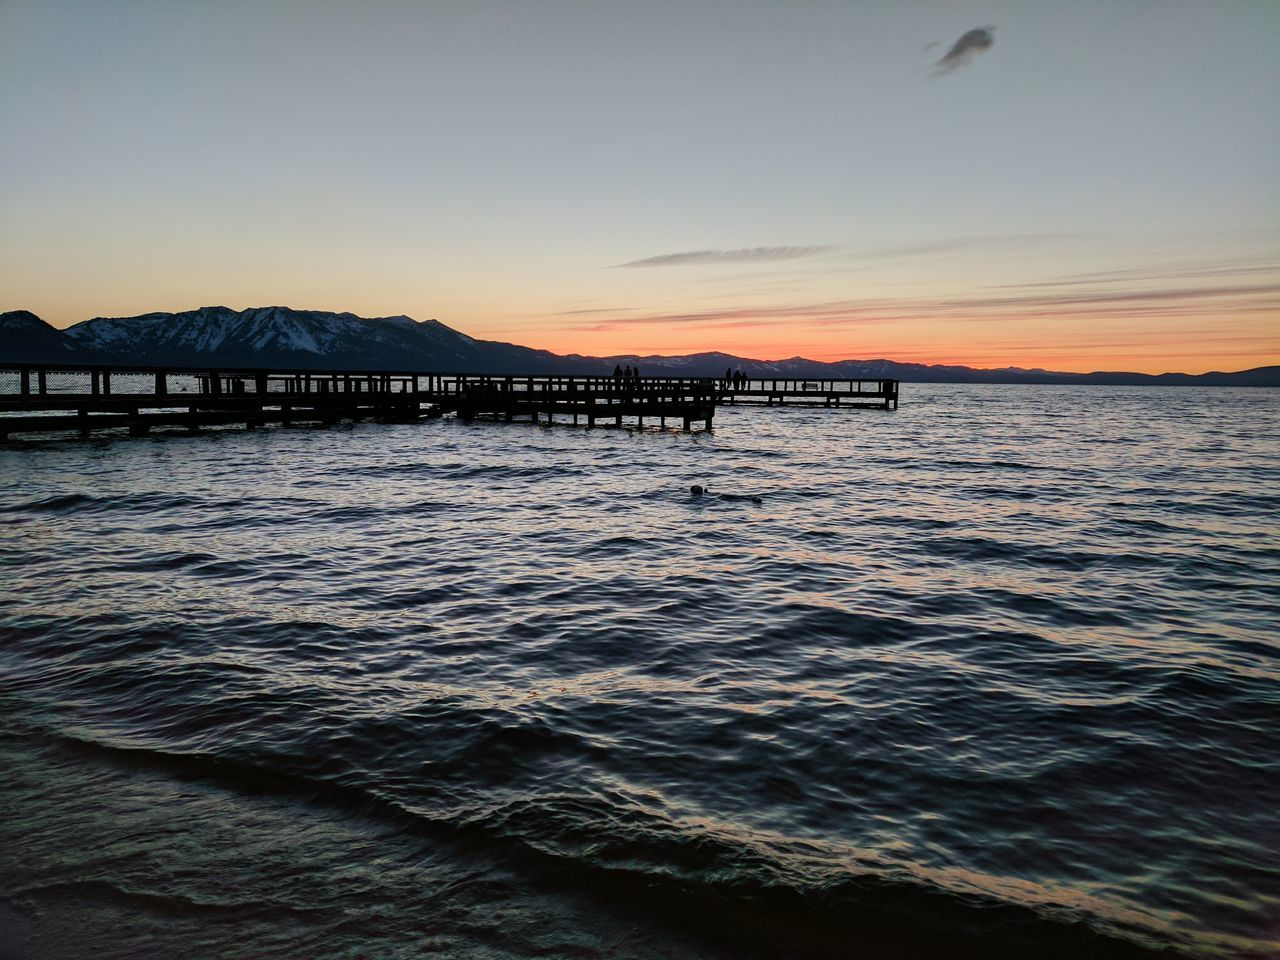 Sunset Water Sky Landscape Mountains And Beach Lake Waves Alpine Lake Summer Horizon Over Water Beach Tranquility Tranquil Scene Scenics Vacations Nature Travel Destinations No People Beauty In Nature Wave Day Lake Tahoe California United States